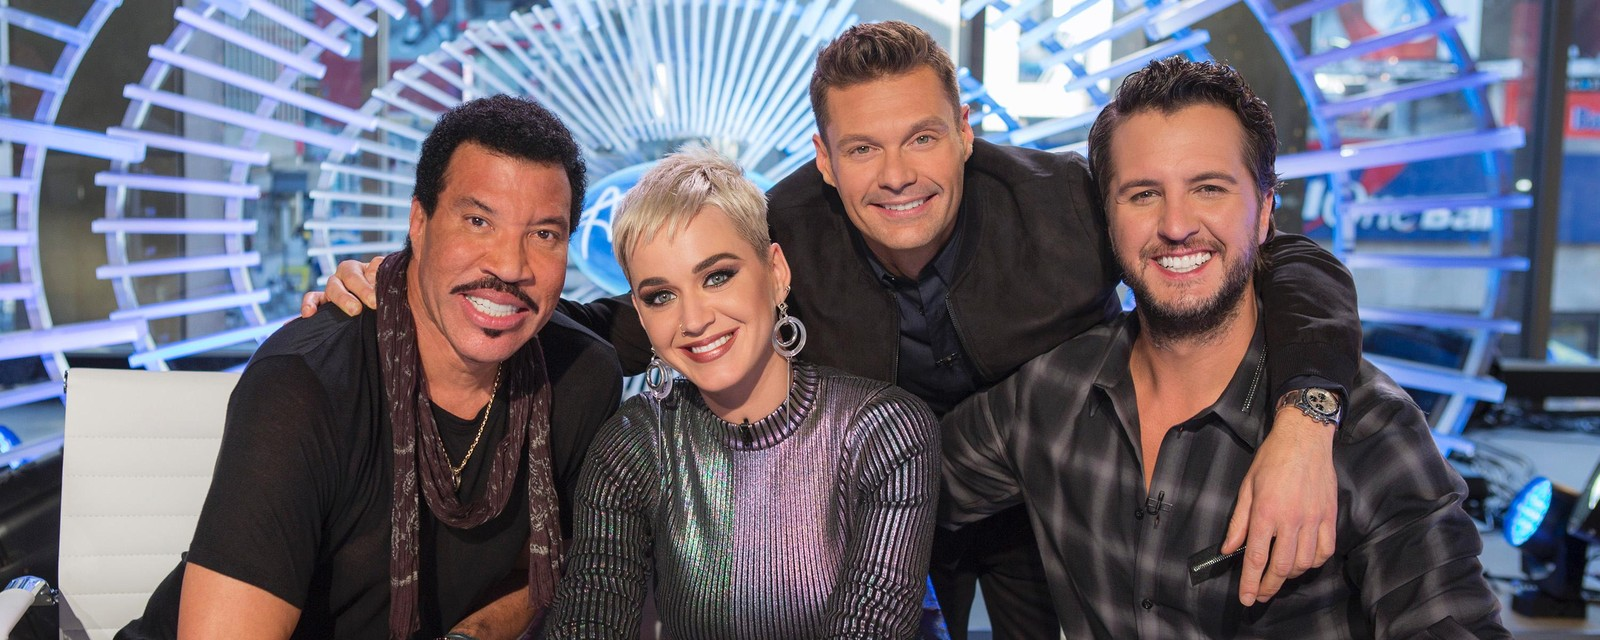 When Does American Idol Start 2018 Premiere Date Announced